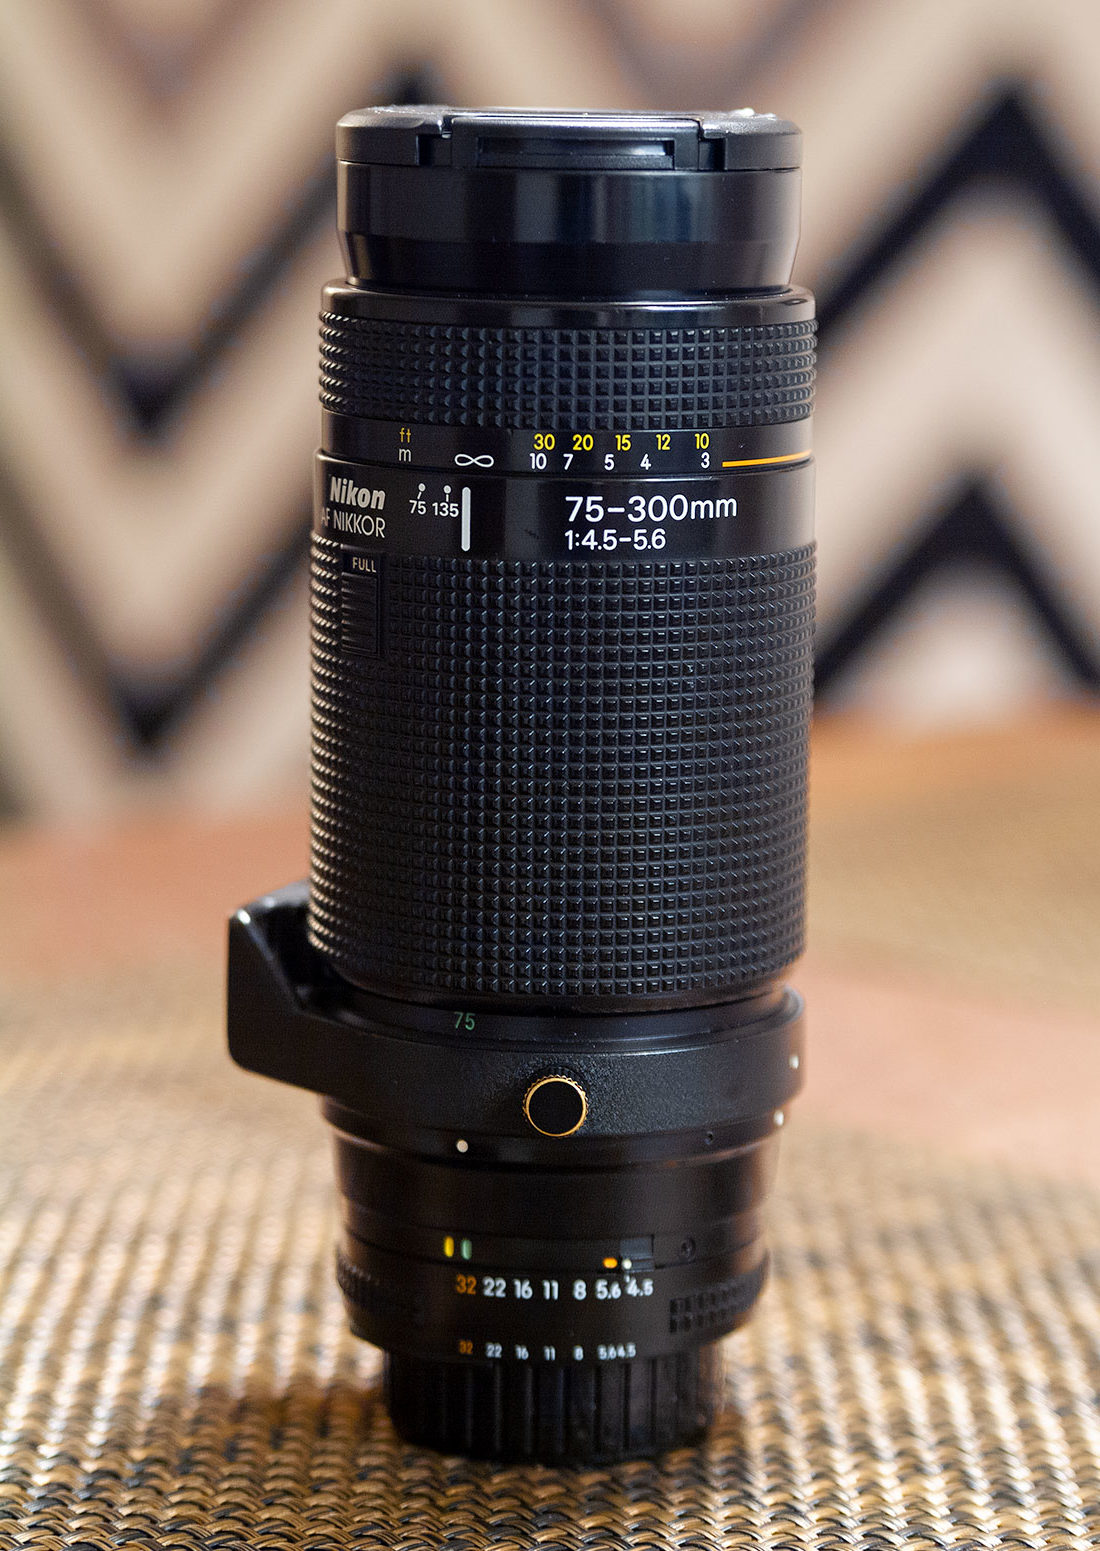 Nikon AF 75-300mm F:4.5-5.6 Vintage Lens Review